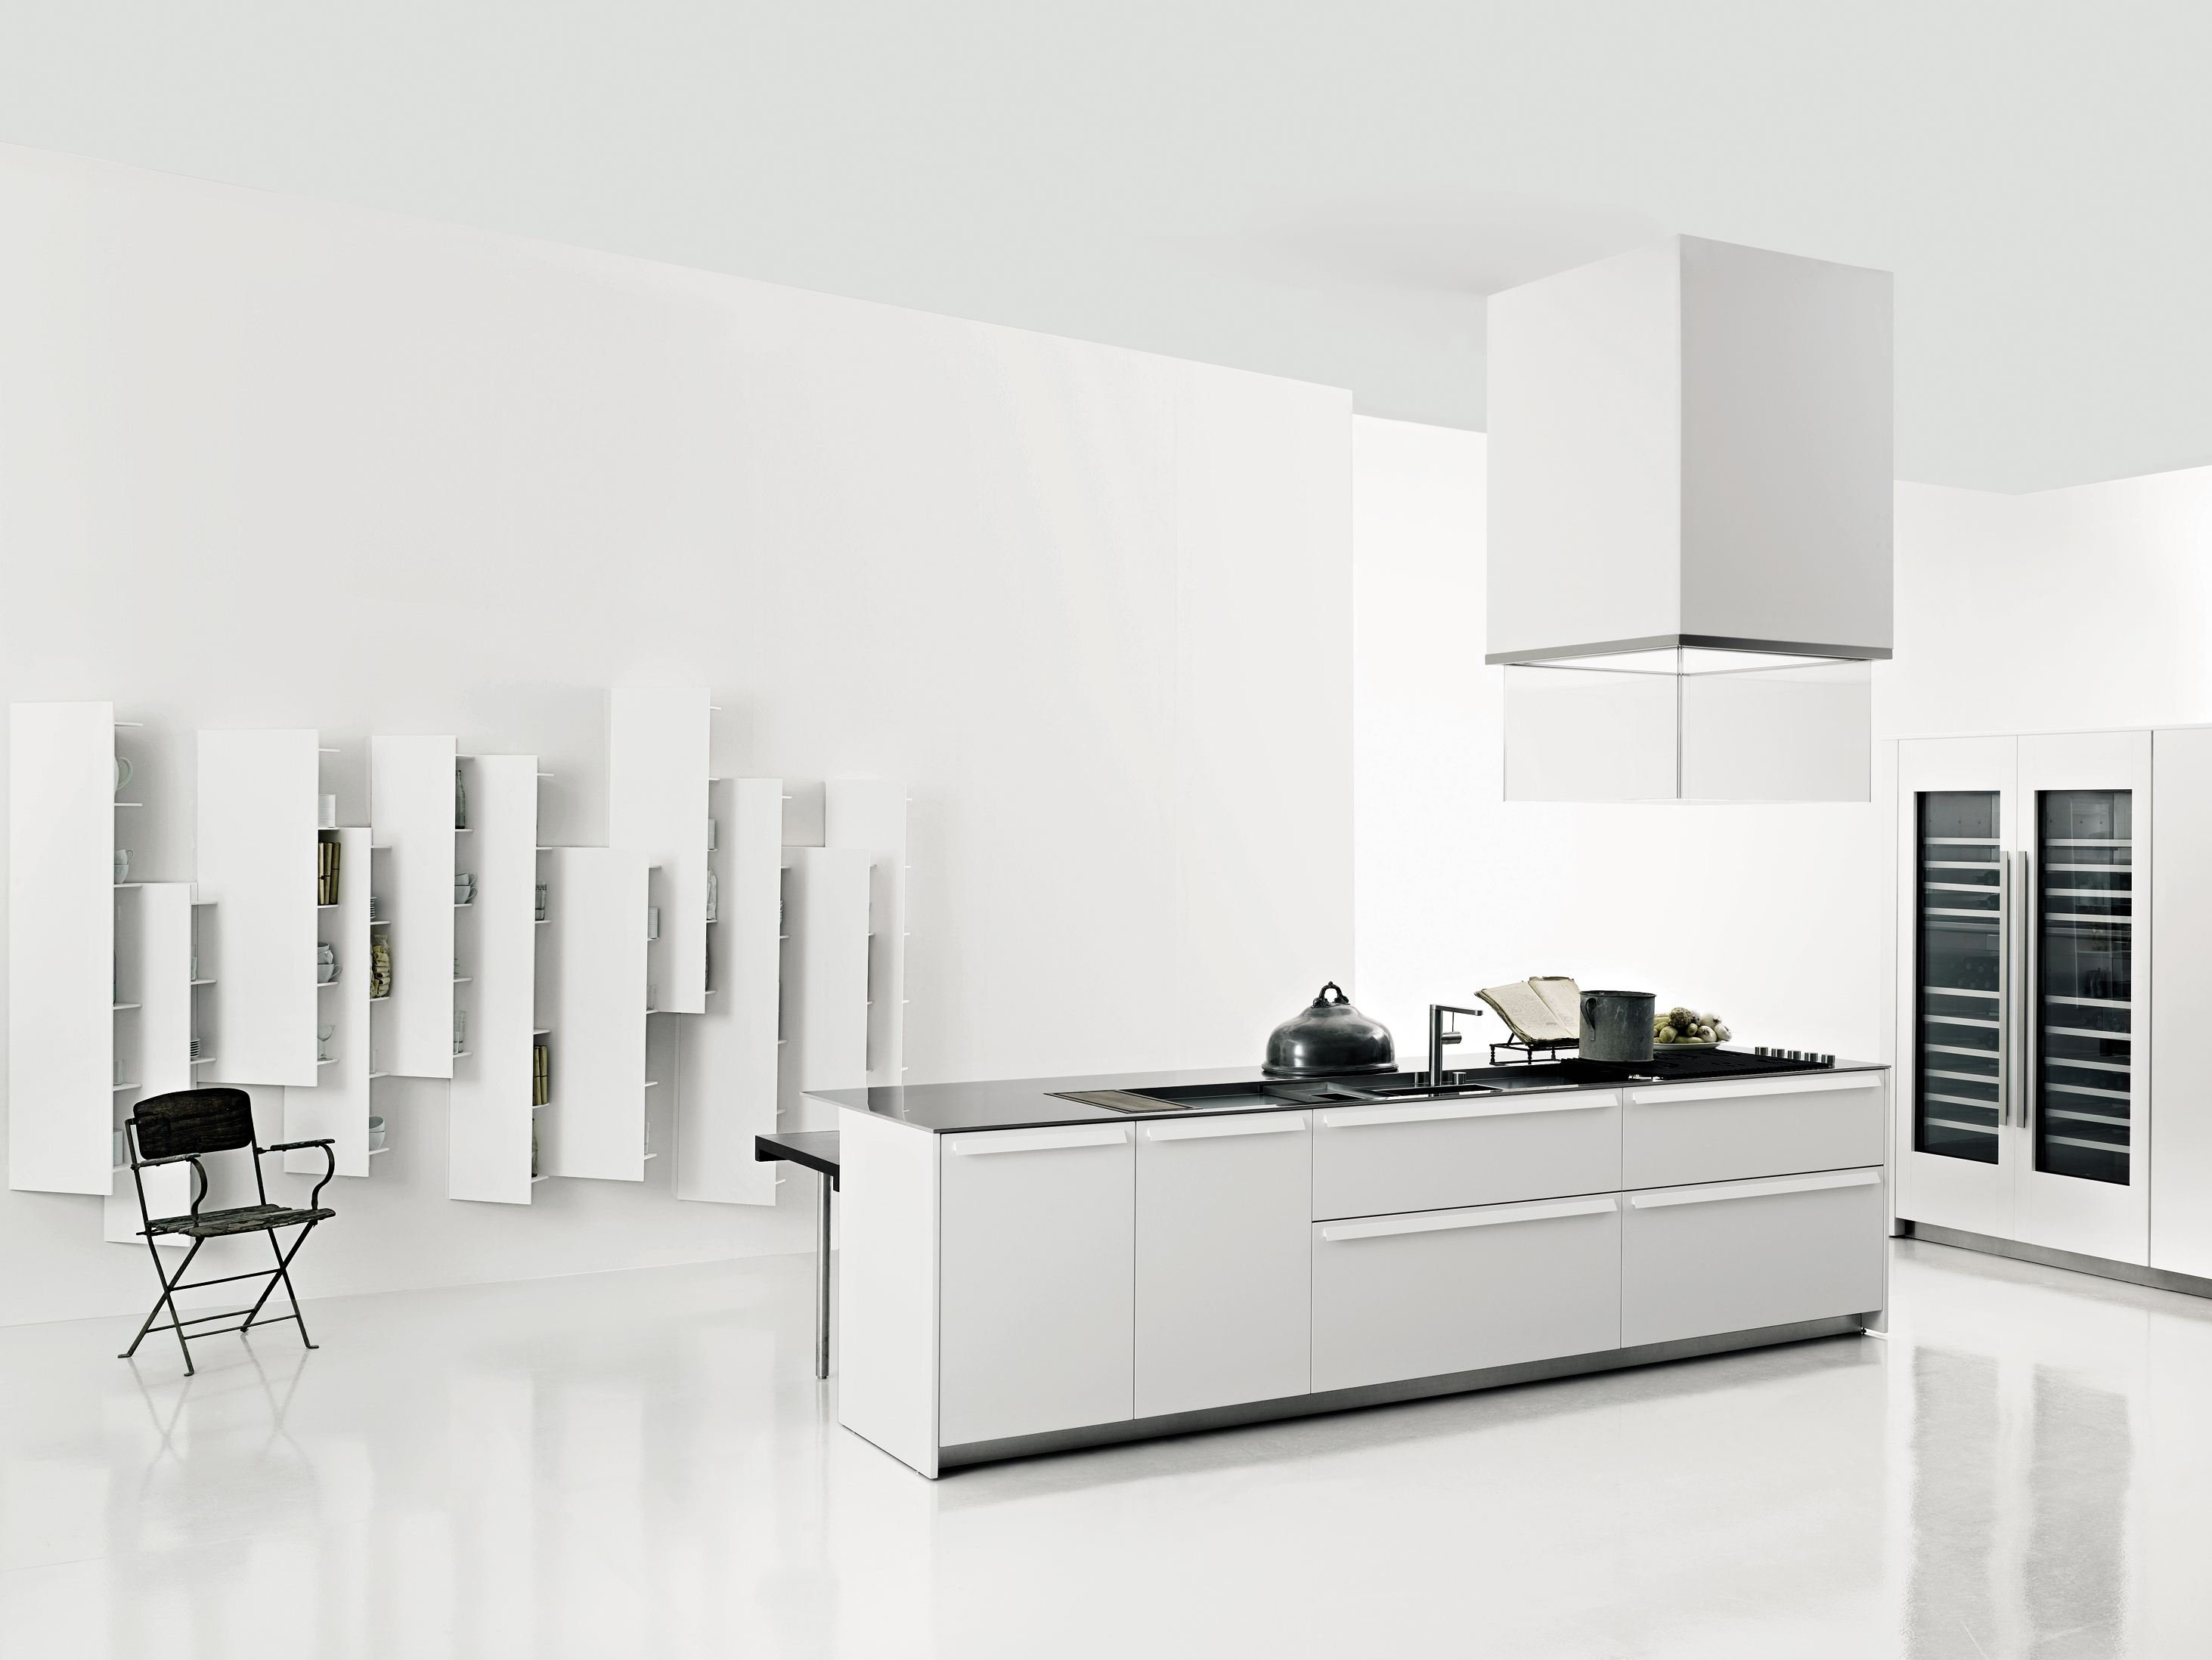 k che aus corian mit k cheninsel aprile by boffi design piero lissoni. Black Bedroom Furniture Sets. Home Design Ideas